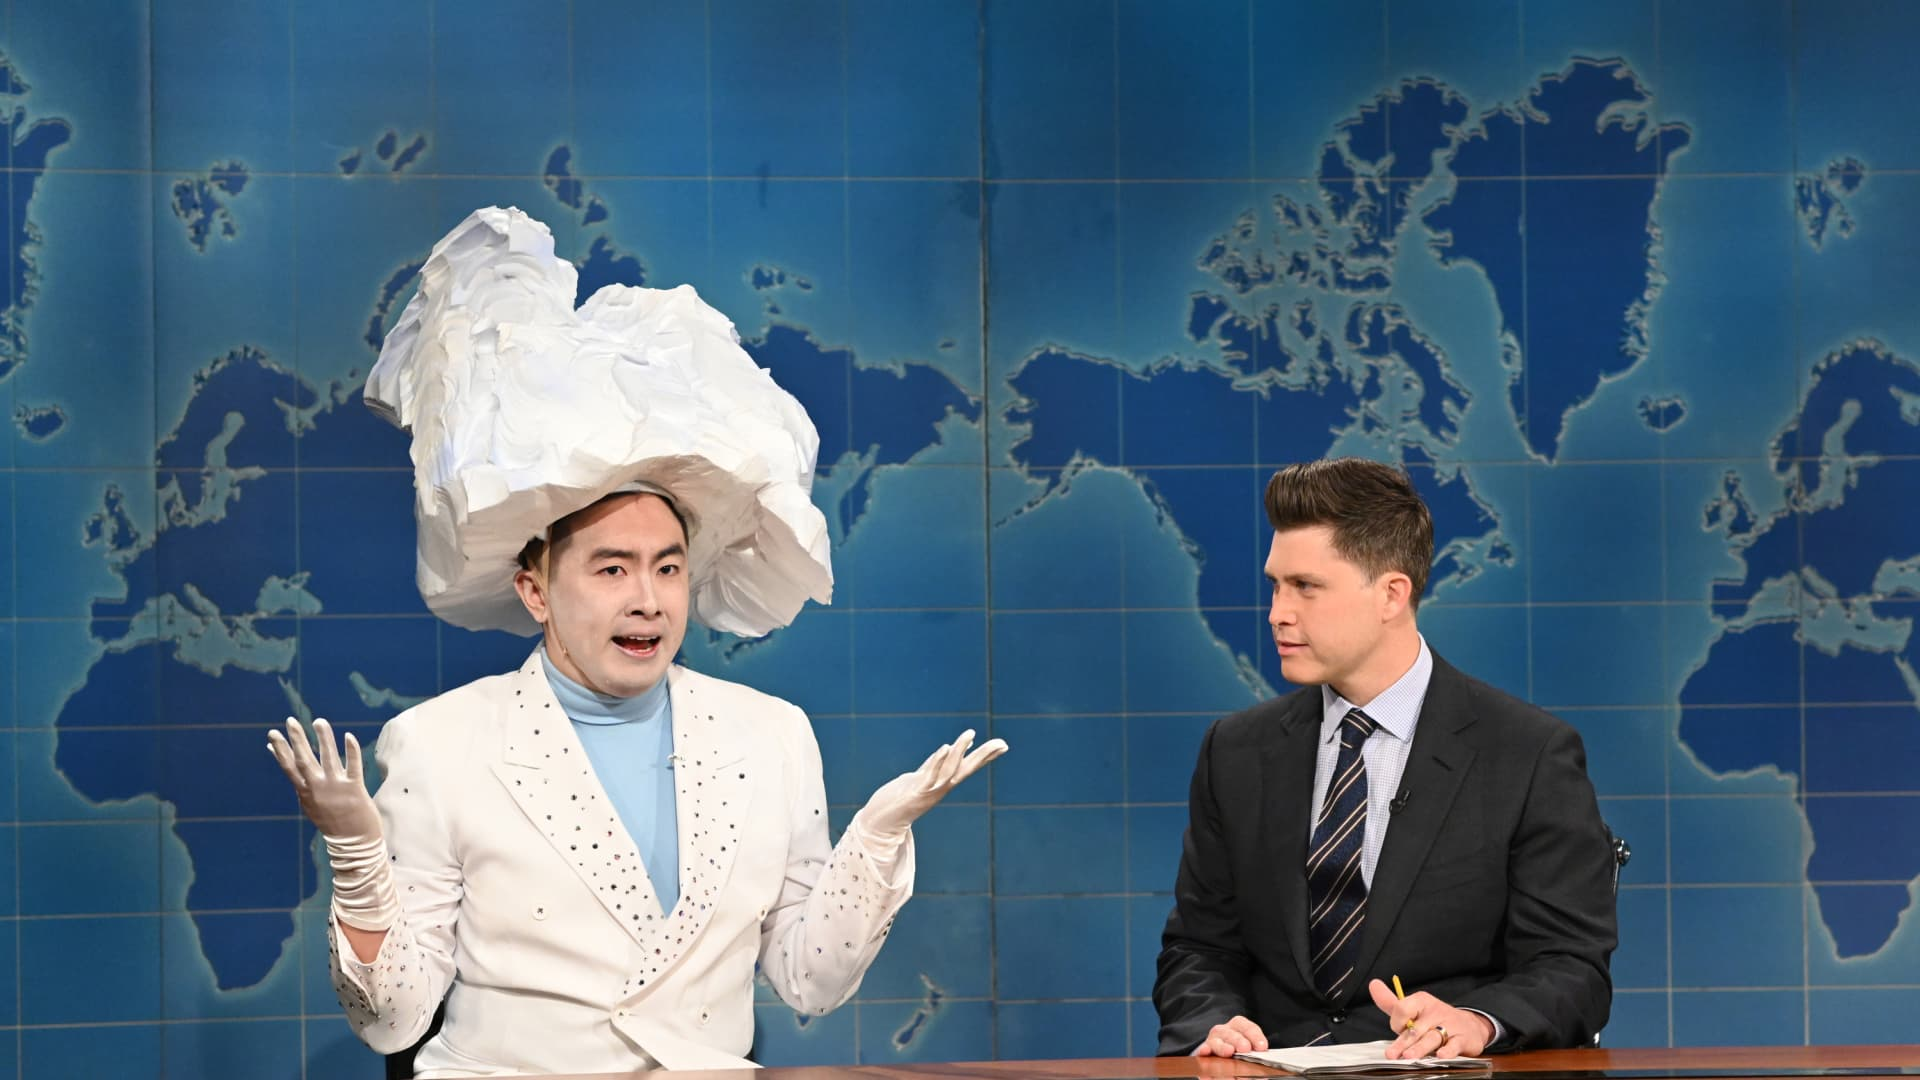 Pictured: (l-r) Bowen Yang as 'The Iceberg That Sank The Titanic' and anchor Colin Jost during Weekend Update on Saturday, April 10, 2021.